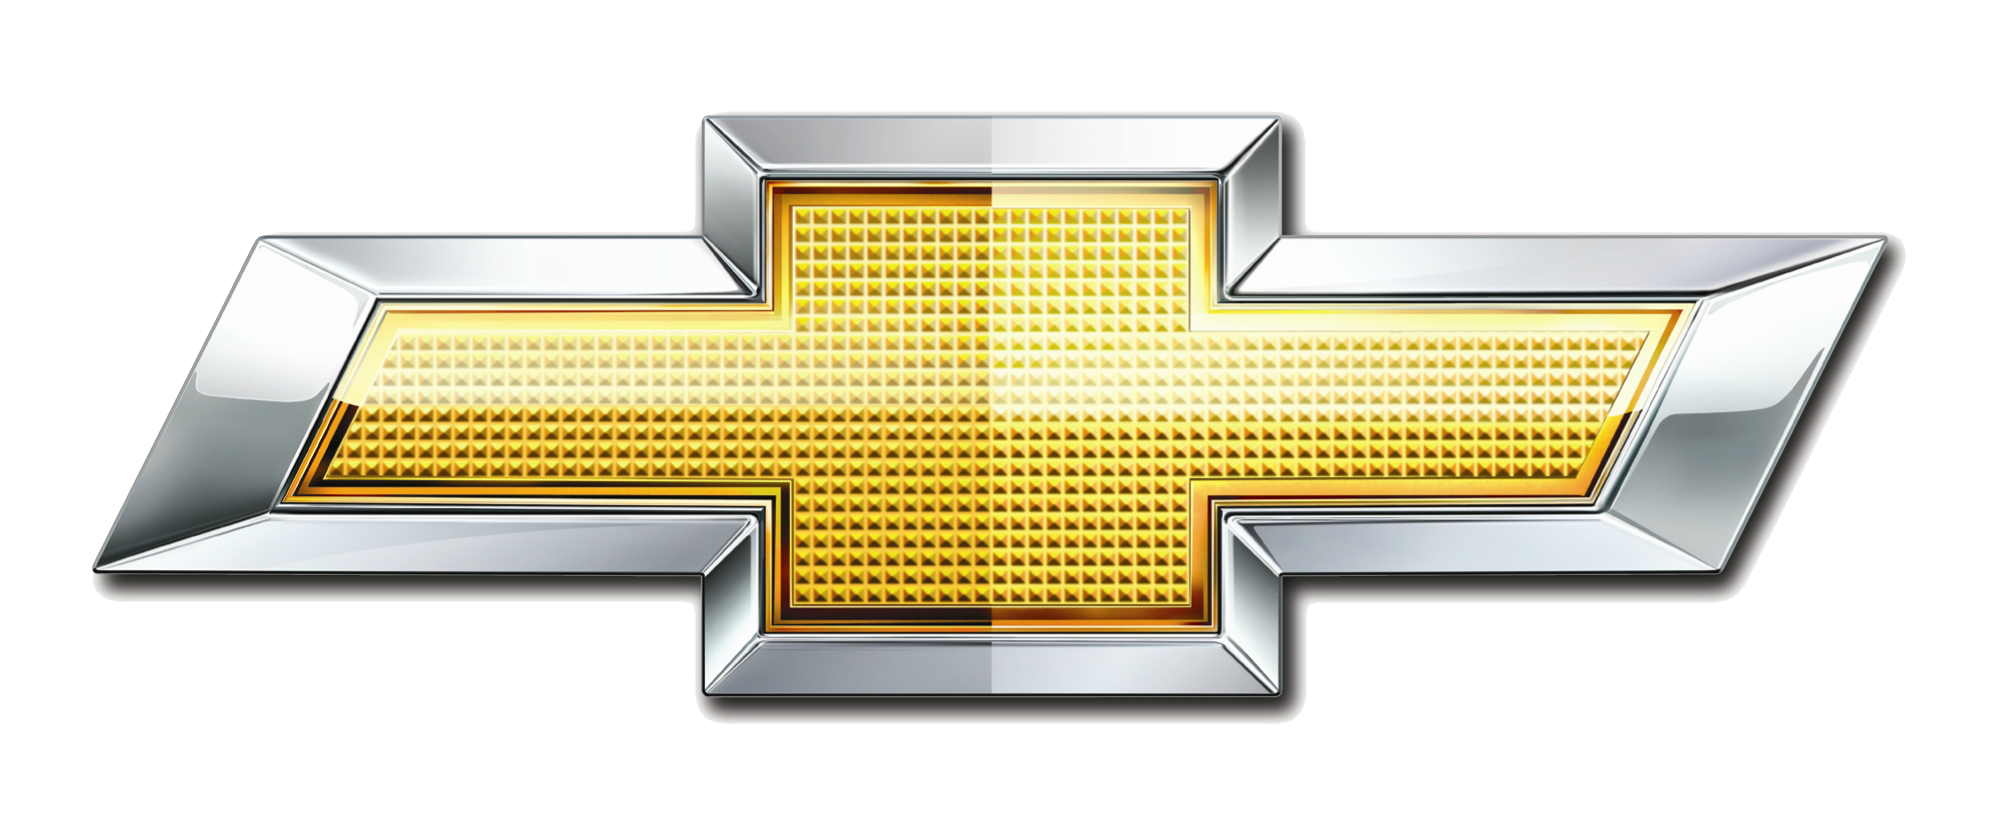 Chevy bowtie logo png. Chevrolet meaning and history